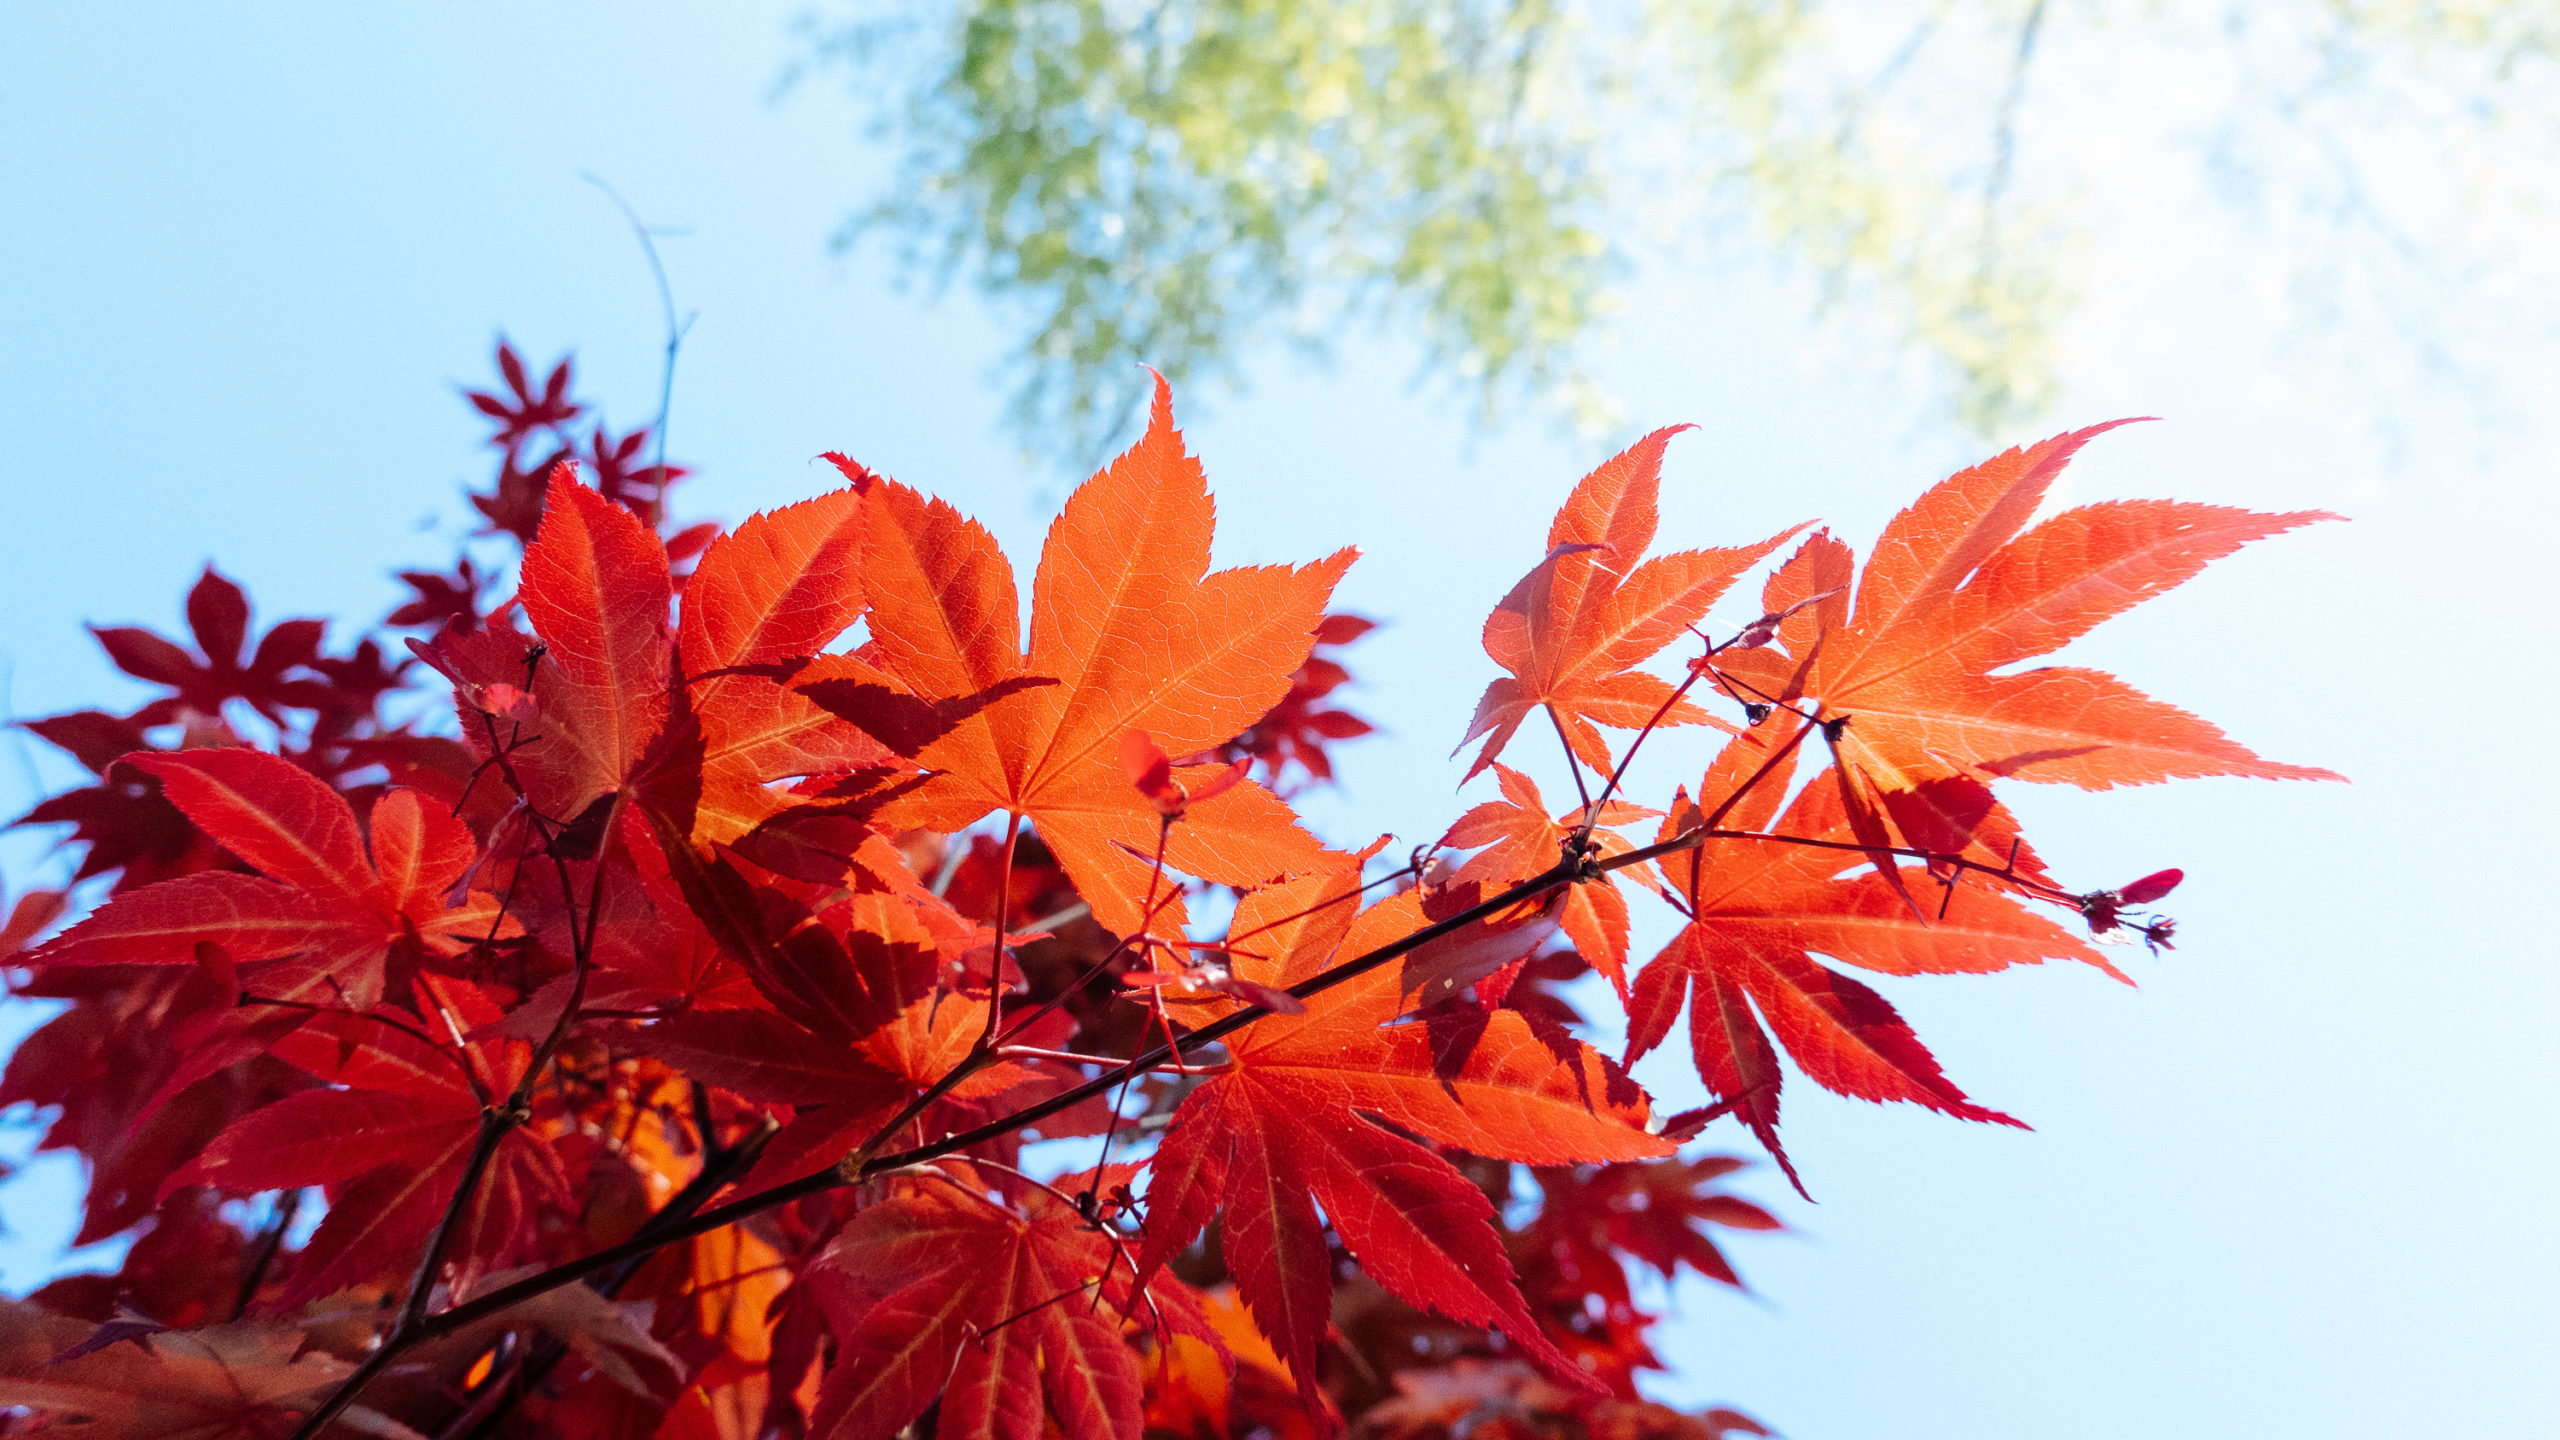 A Japanese Maple lit from the sun, photographed below the leaves